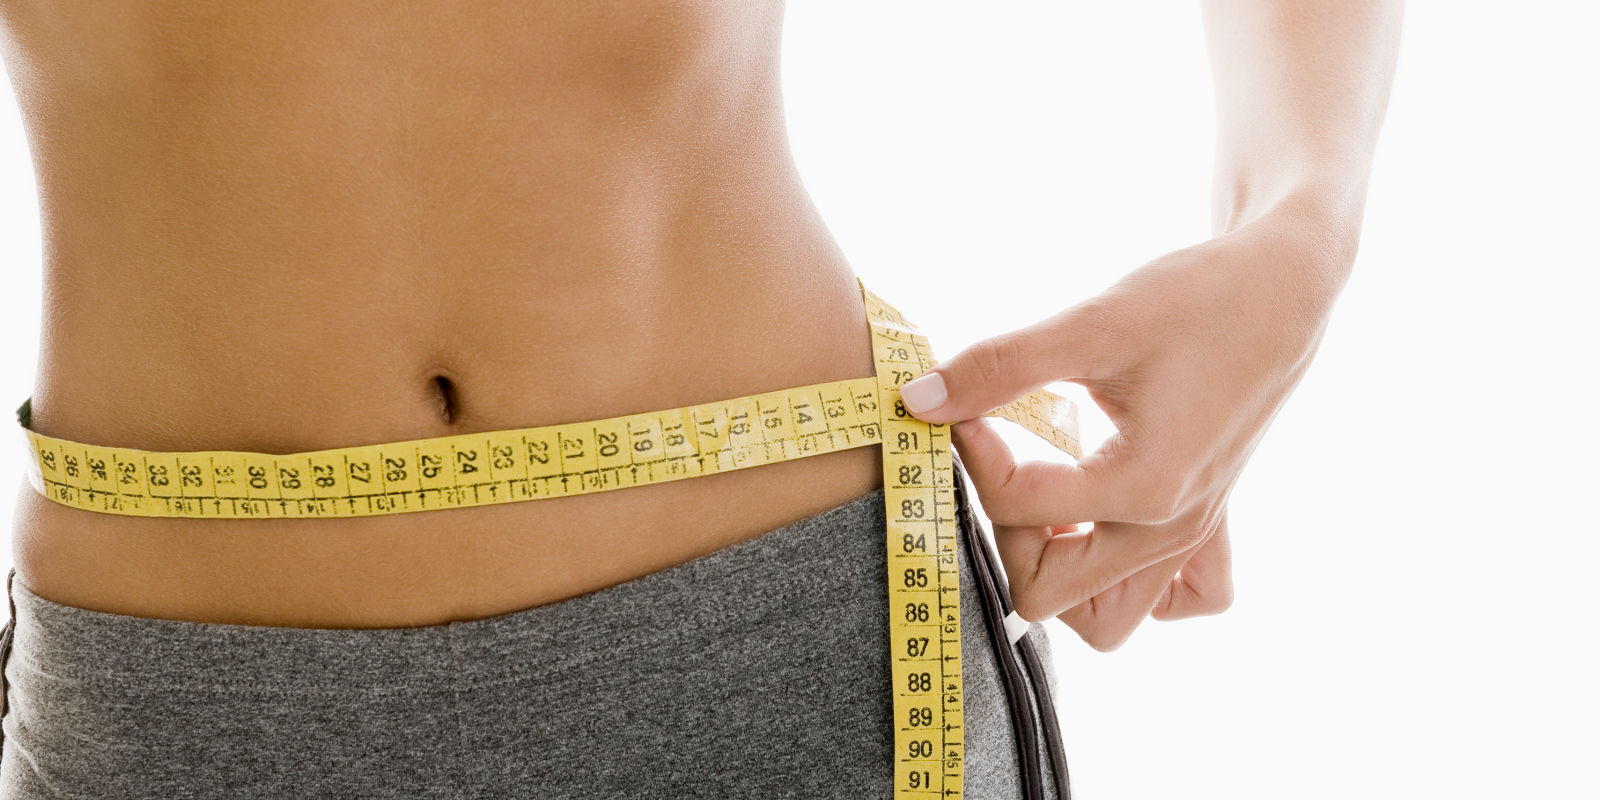 how-to-lose-30-pounds-in-3-months-with-weight-loss-strategies